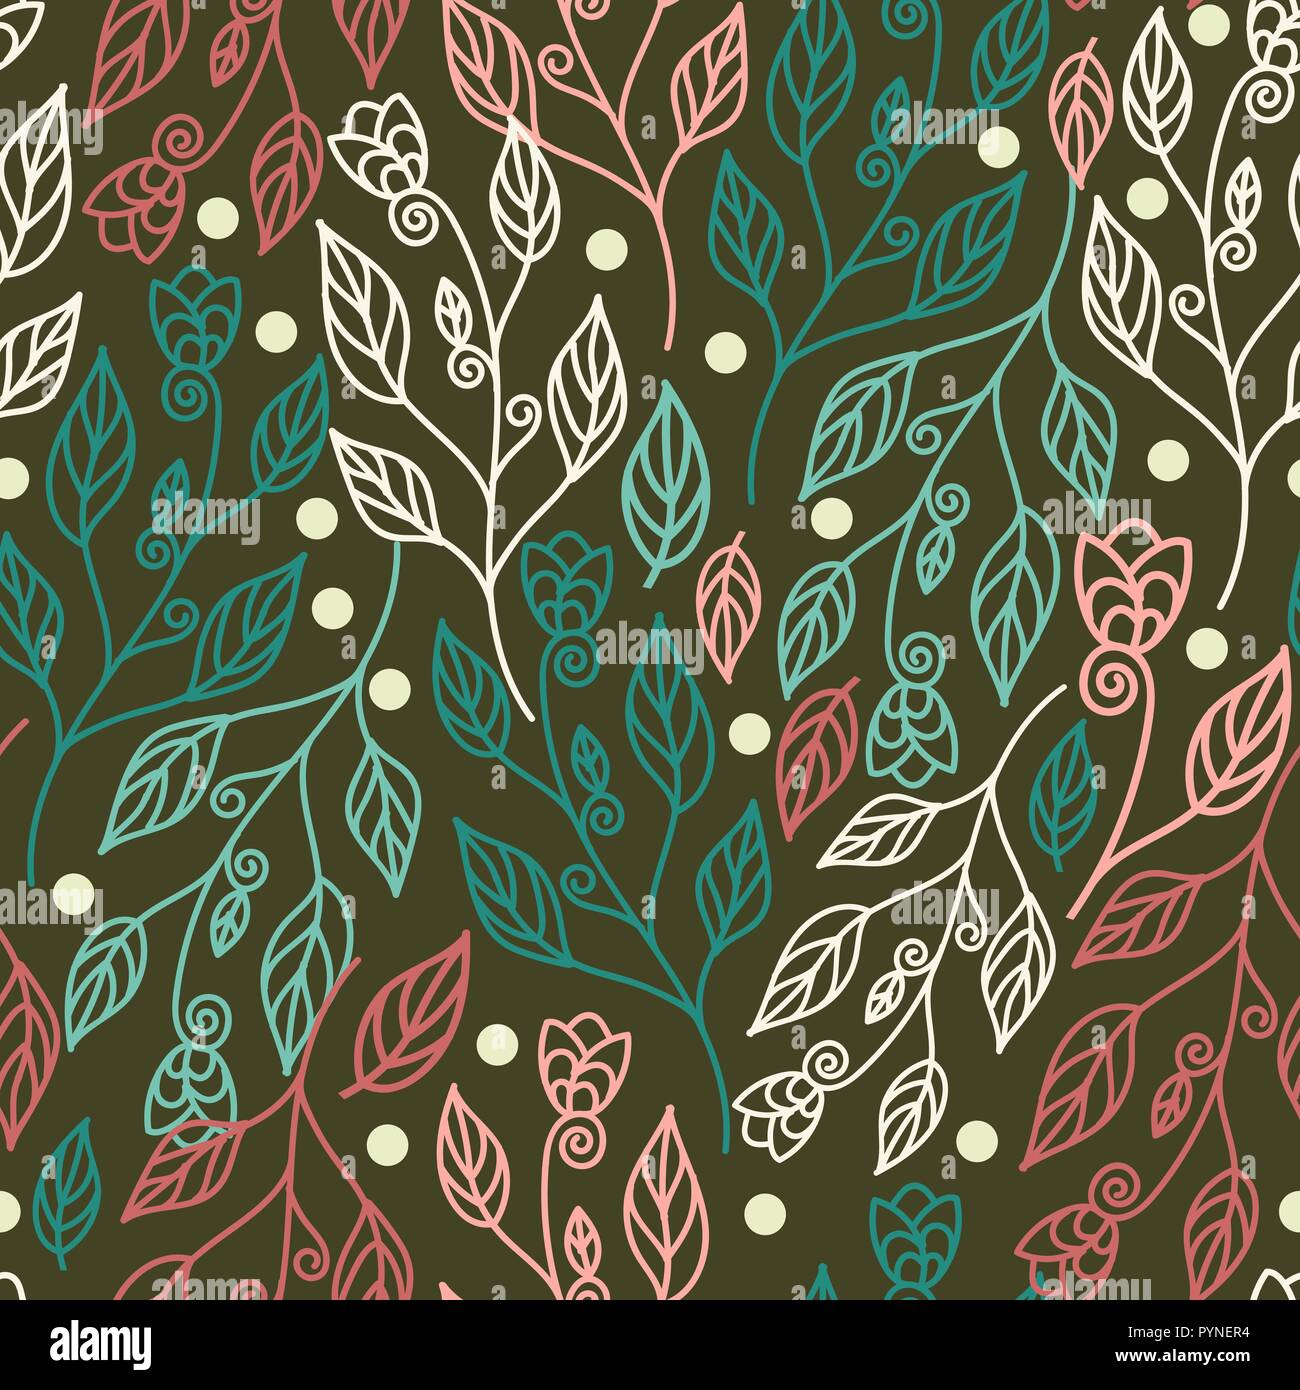 Floral Seamless Pattern With Leaves And Beautiful Flowers